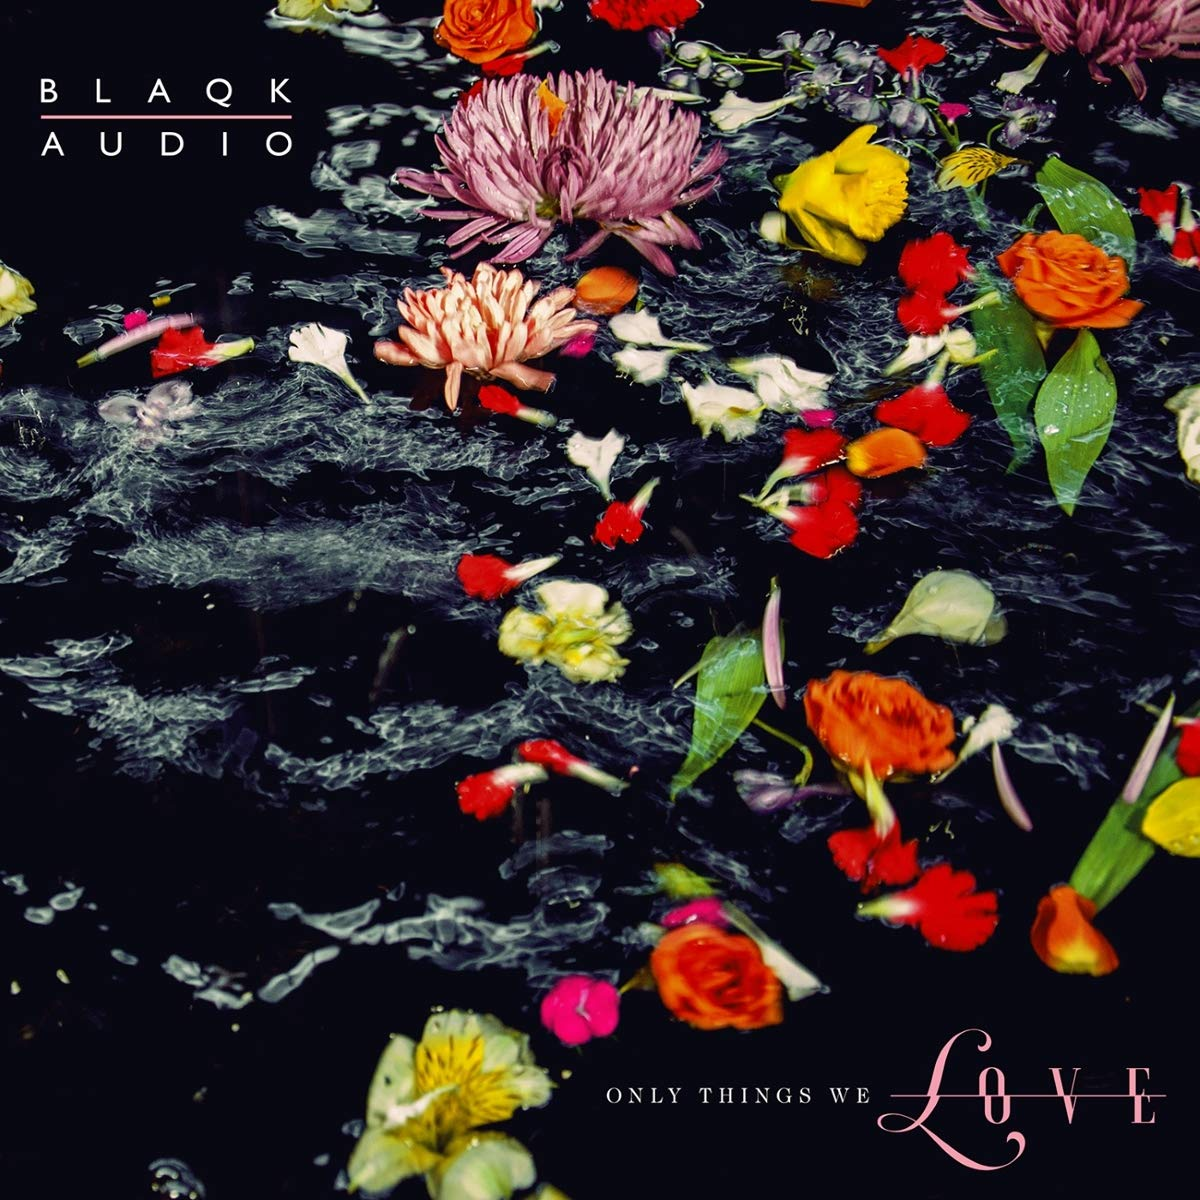 Blaqk Audio - Only Things We Love [Limited Edition Flower Picture Disc LP]